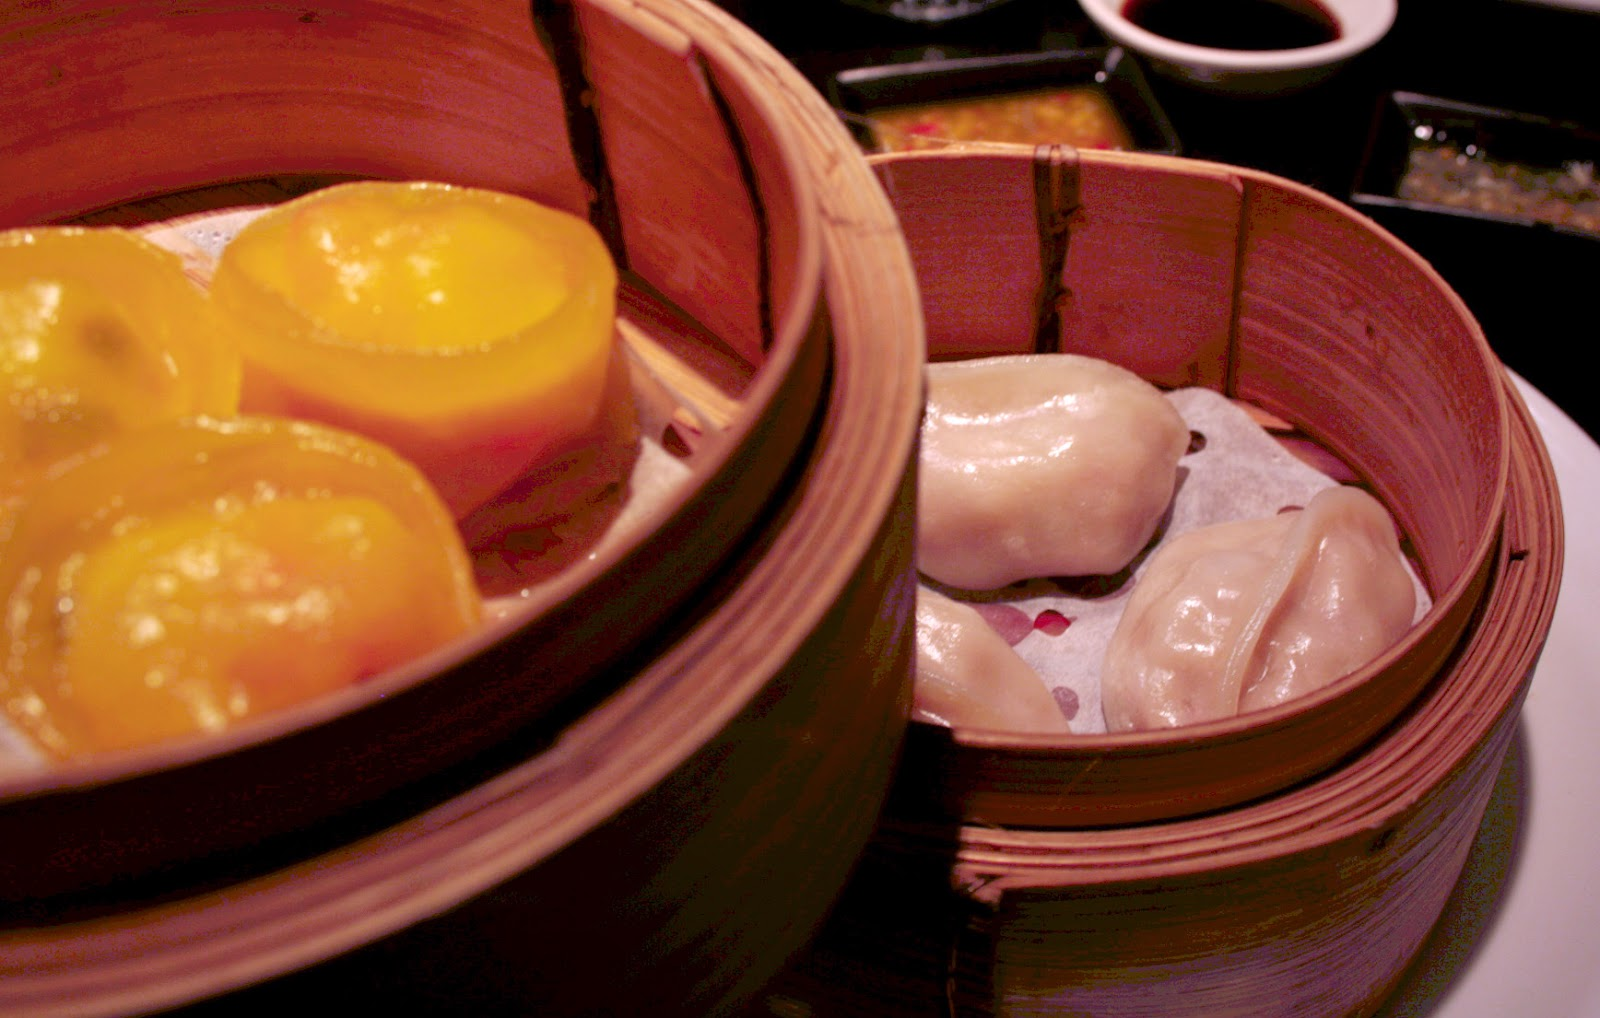 Steamed dumplings from Ping Pong dim sum